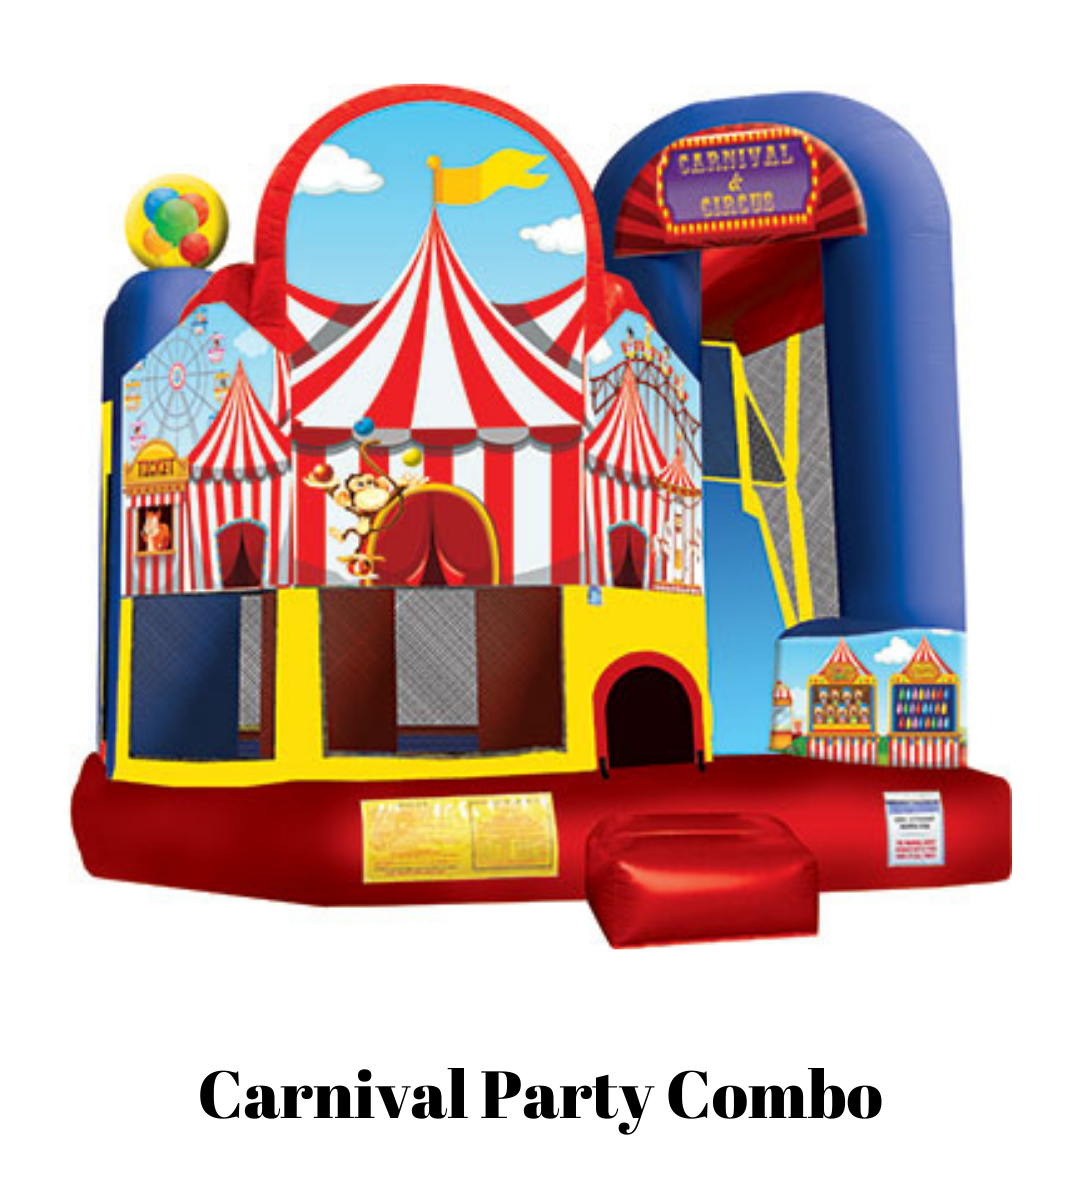 rent Carnival Party Combo Bounce House